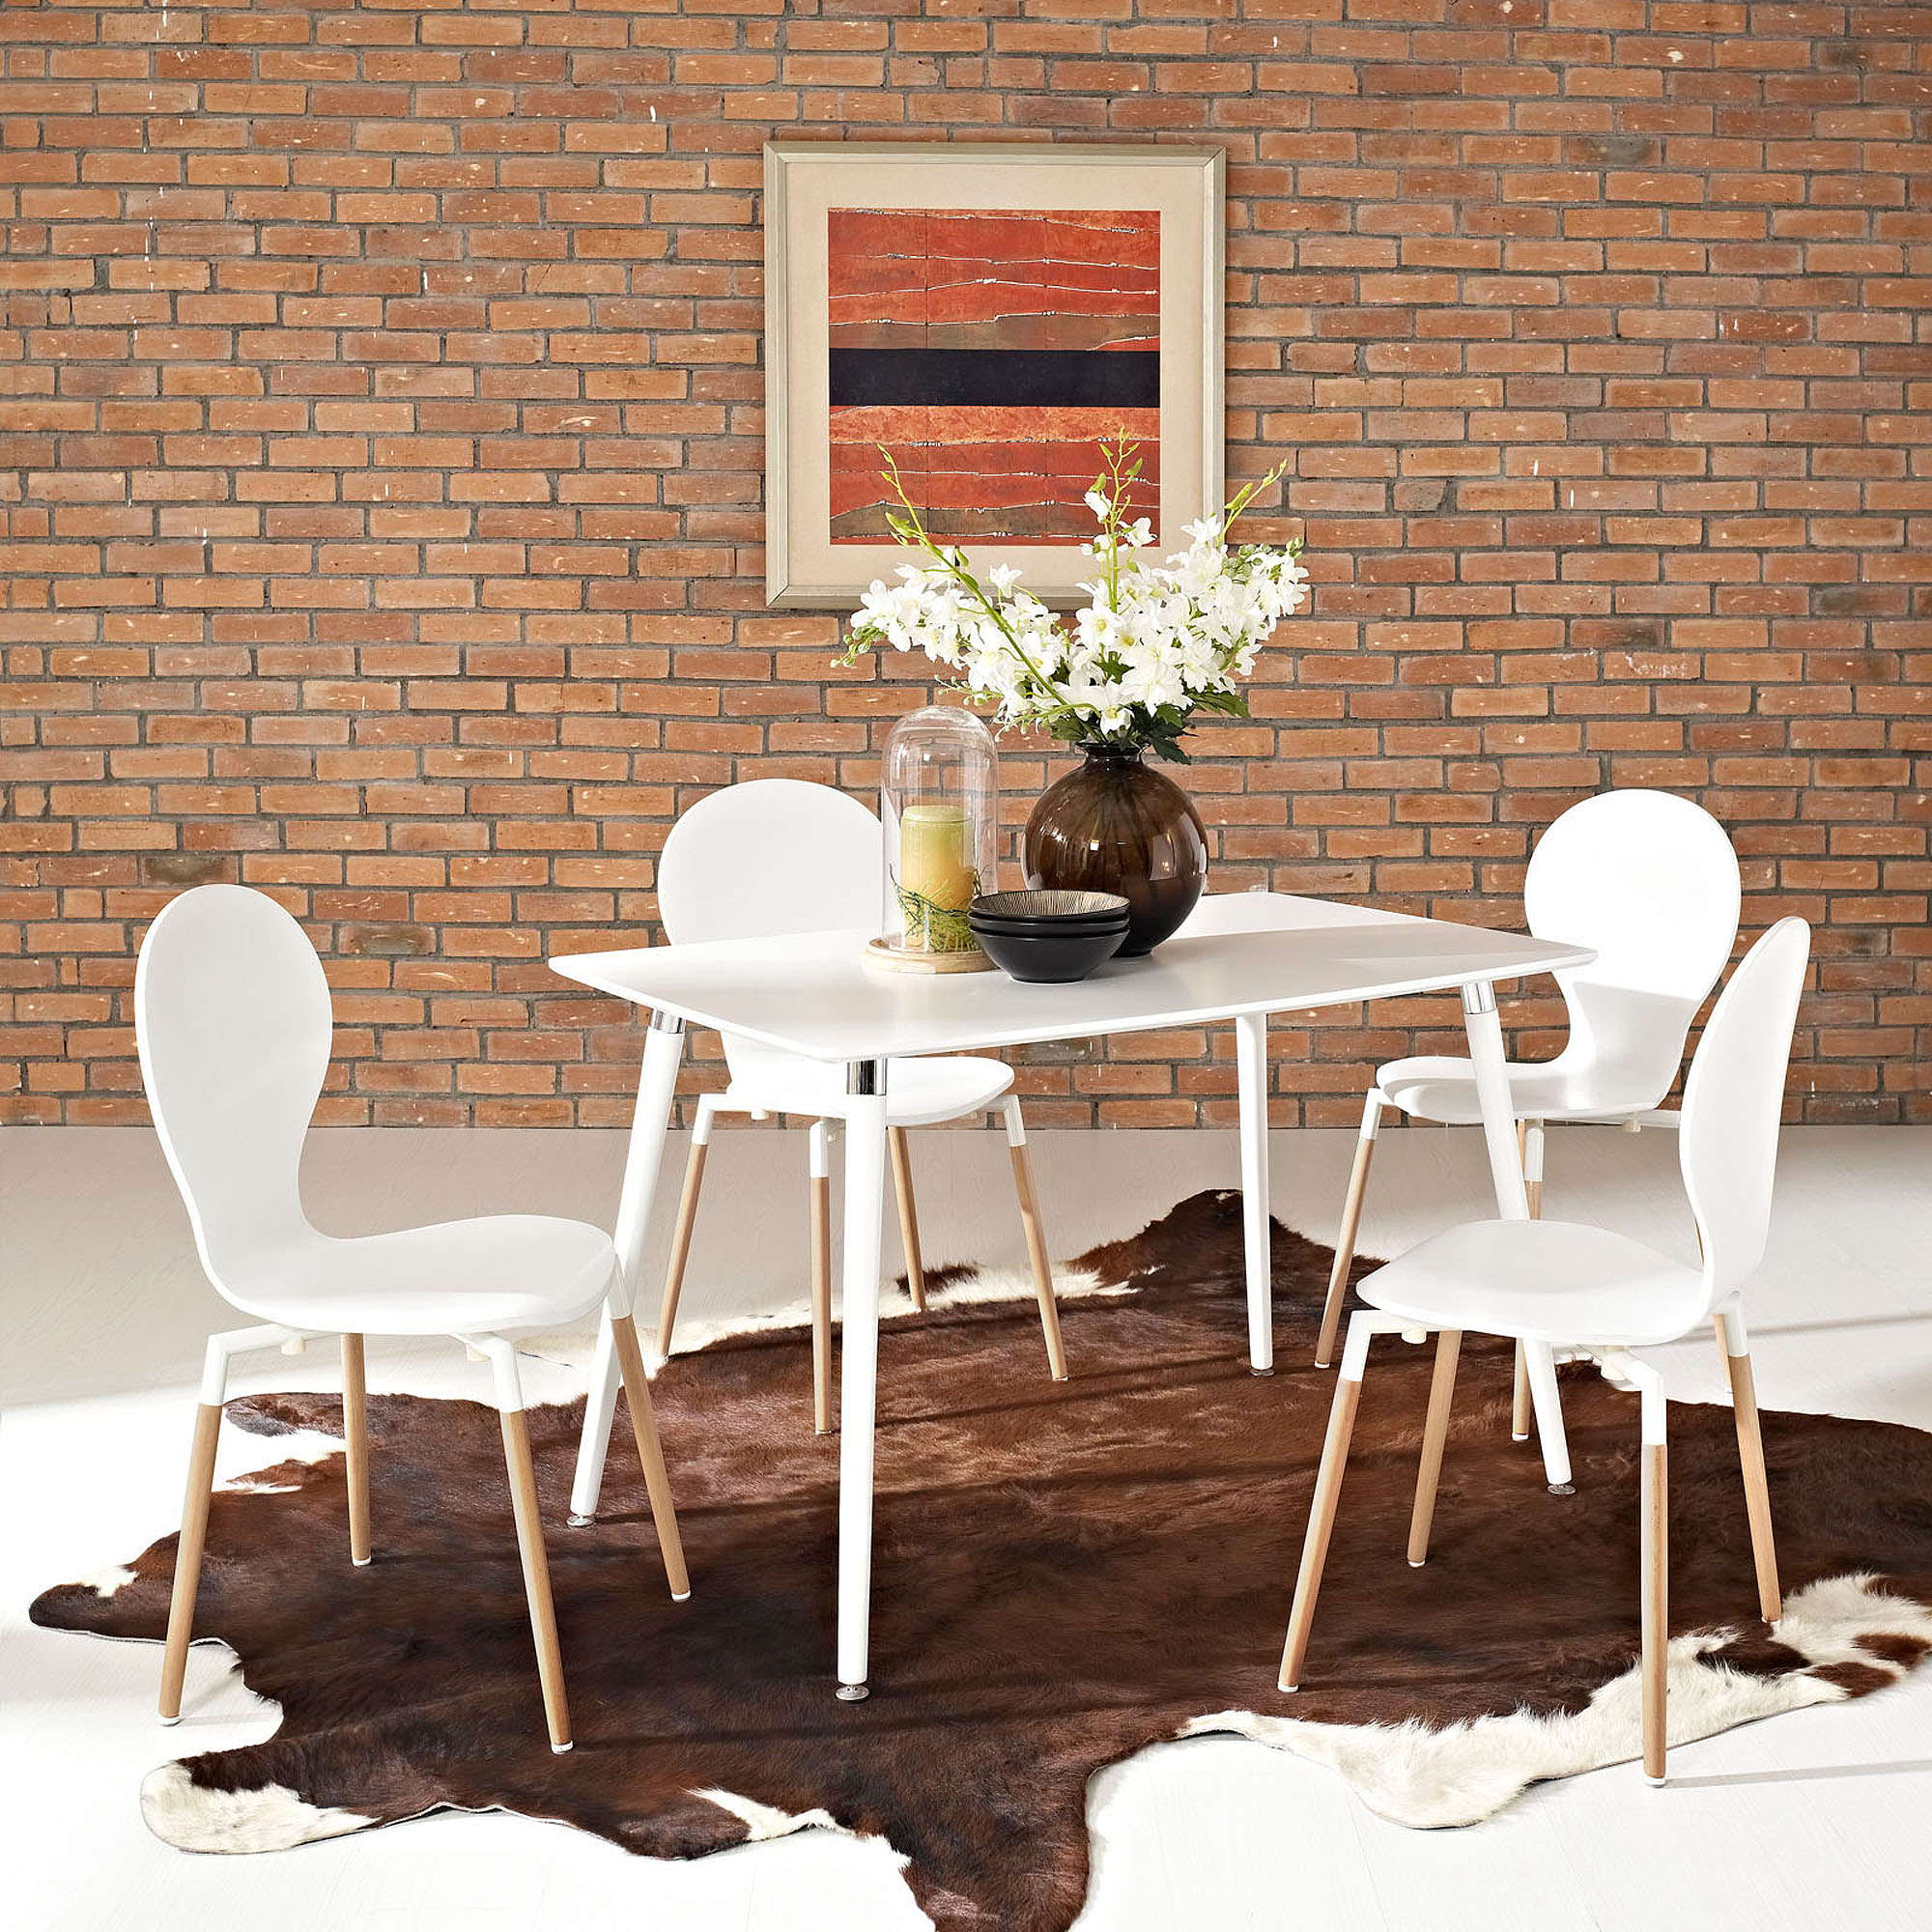 Modway Lode Rectangular Wood Dining Table with Wood Legs in White